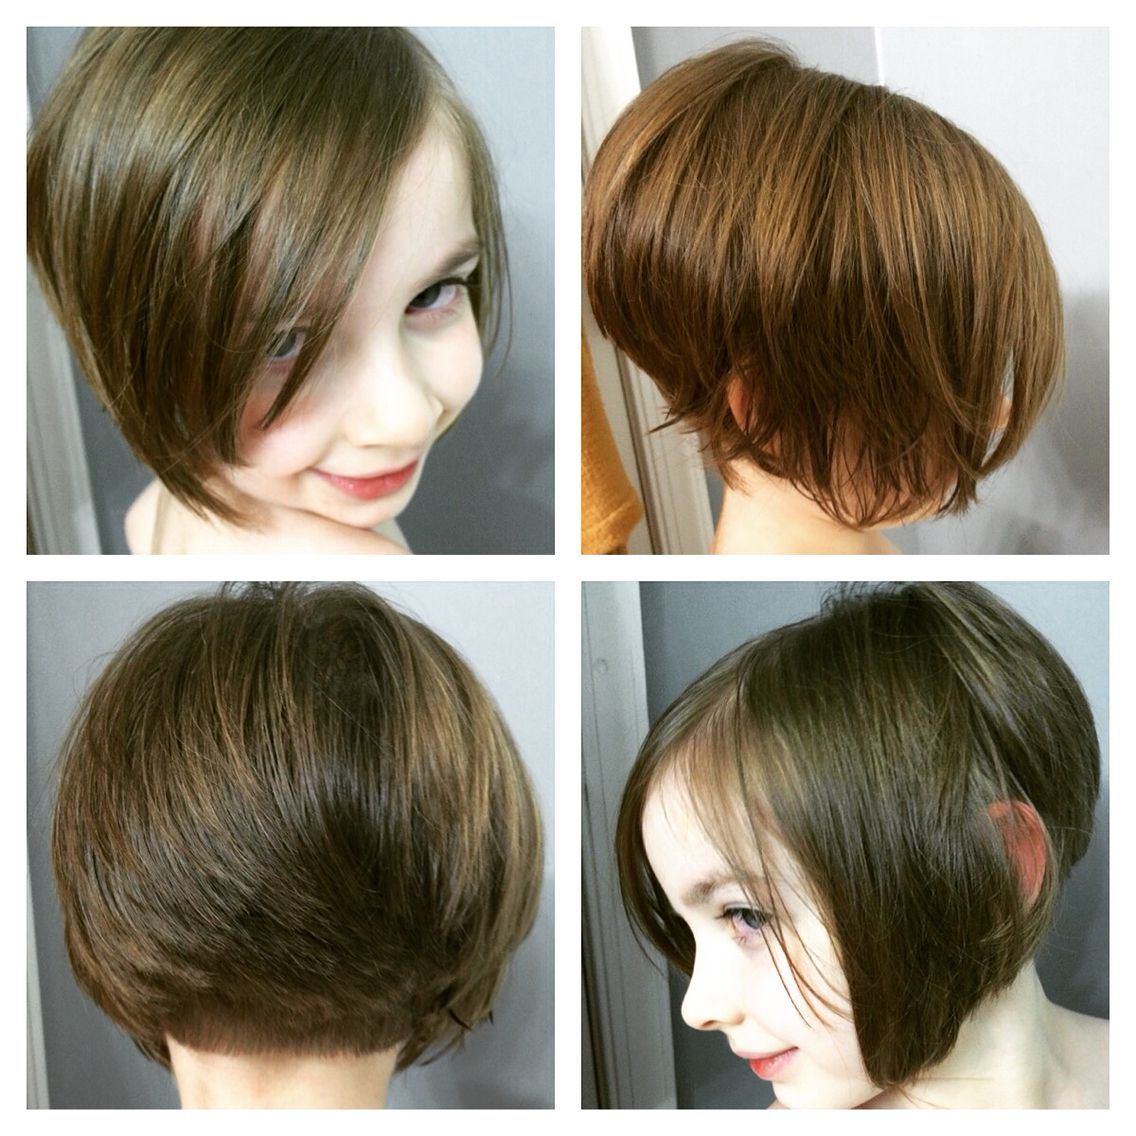 Little Girl Asymmetrical Bob Hair In 2018 Pinterest Hair Cuts